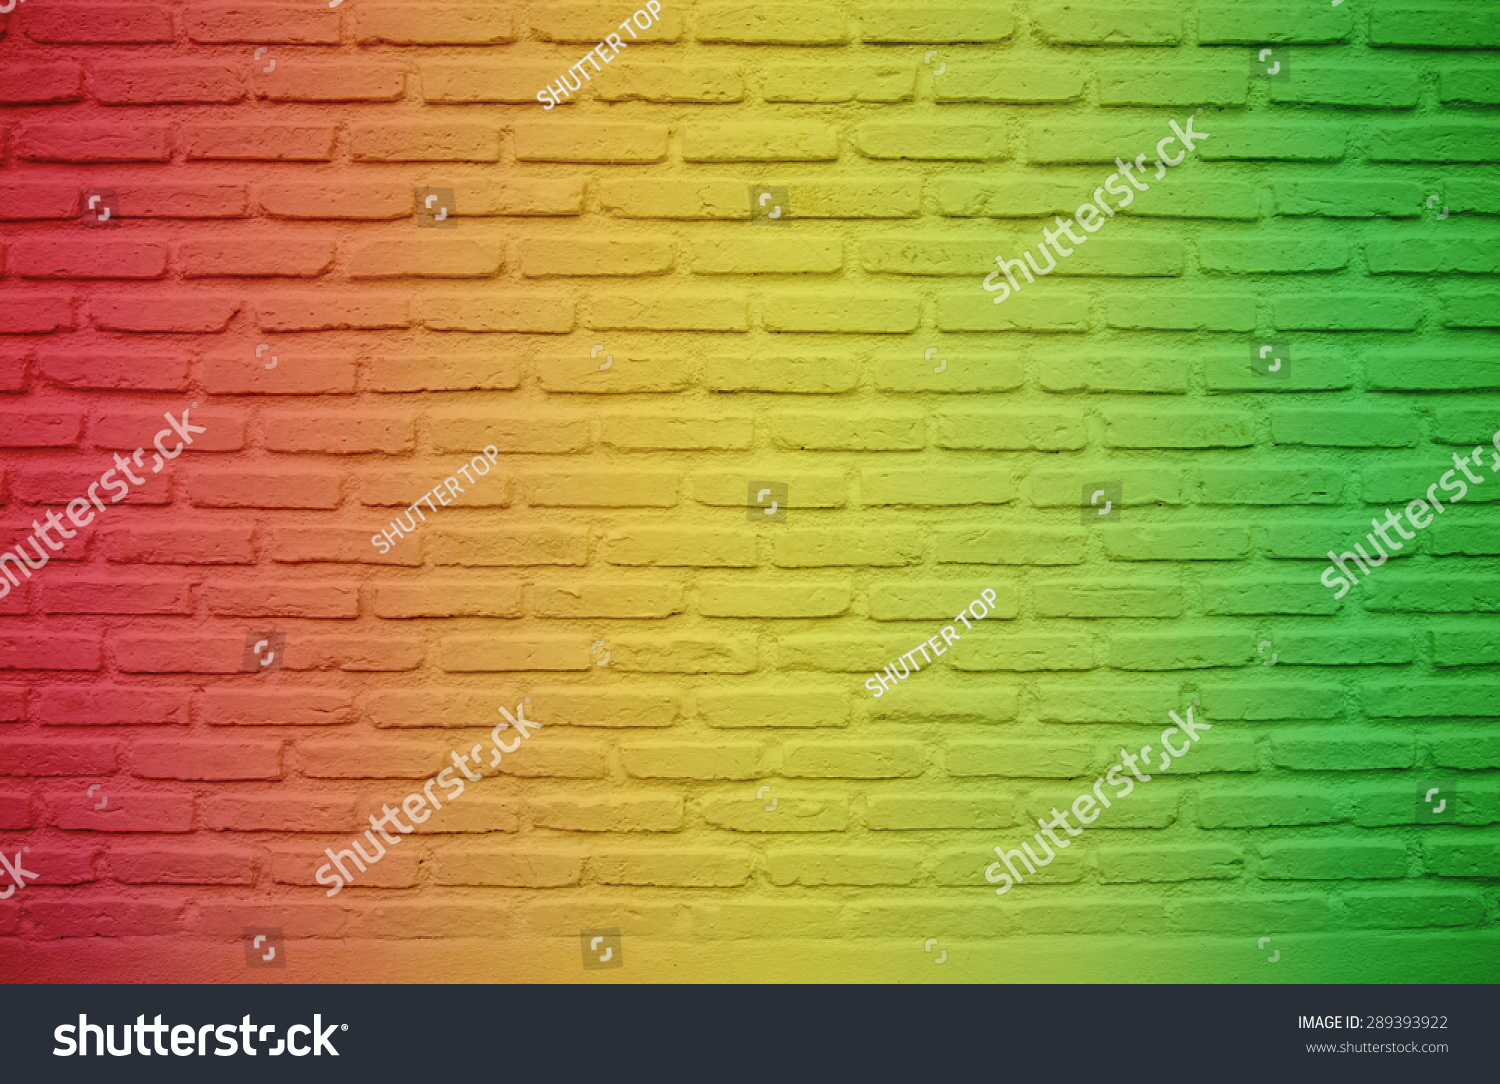 Royalty-free Colors of reggae music on brick wall… #289393922 Stock ...